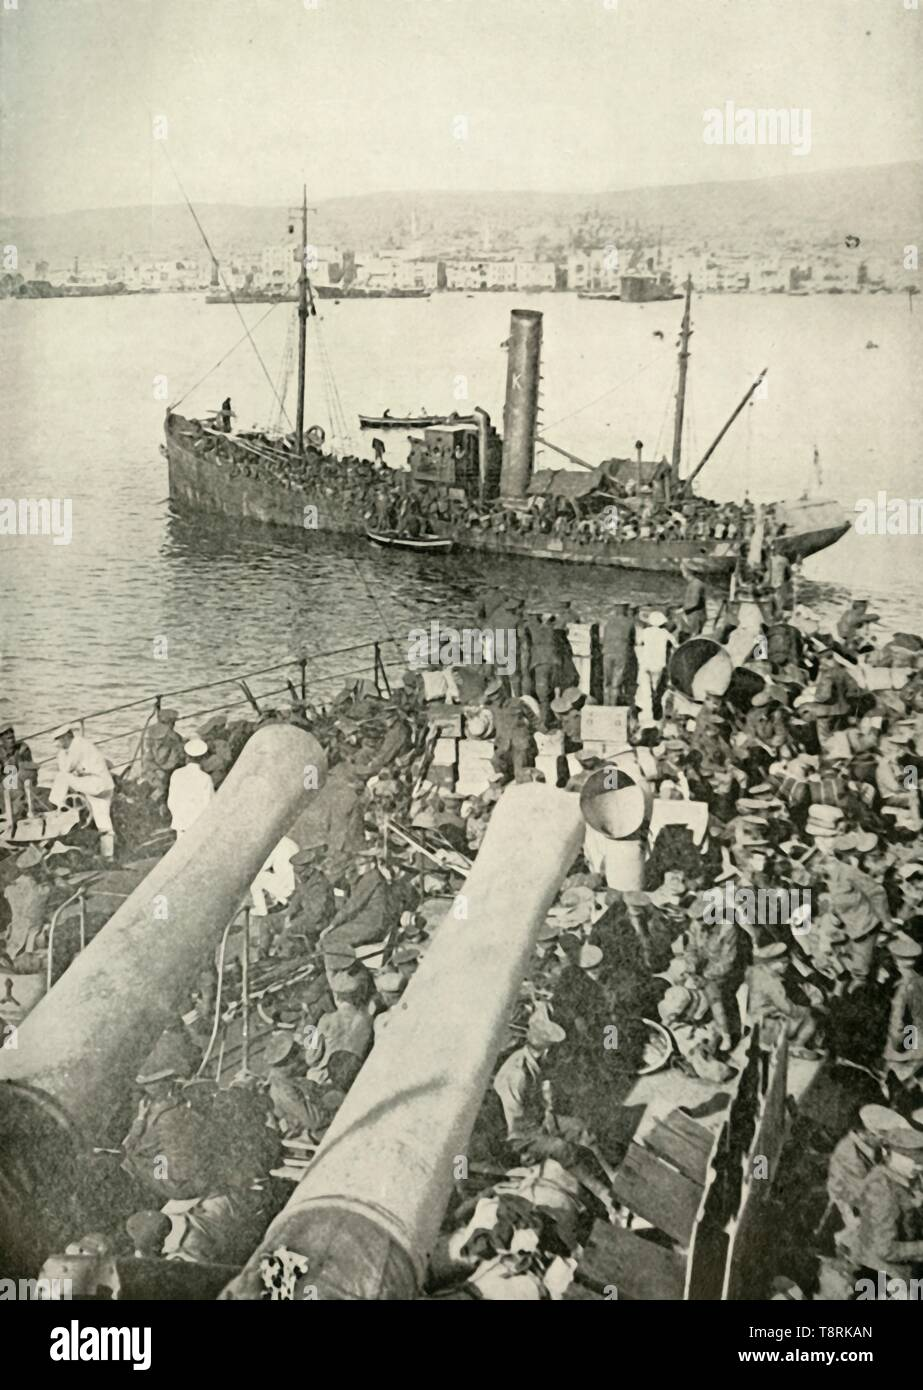 "'Landing of the British Troops at Salonika', (1919). Scene from the First World War, 1914-1919: 'Many of the troops evacuated from Gallipoli were transferred to Salonika [Thessaloniki in Greece], and with this transference a new phase of the war began. It marked the entry of the British troops into the Balkan theatre of war.' Between 1915 and 1918, British troops were part of an Allied force fighting against the Bulgarians and their allies in the Balkans. From ""The History of the Great European War: its causes and effects"", Vol. V, by W. Stanley Macbean Knight. [Caxton Pulishing Comp - Stock Image"